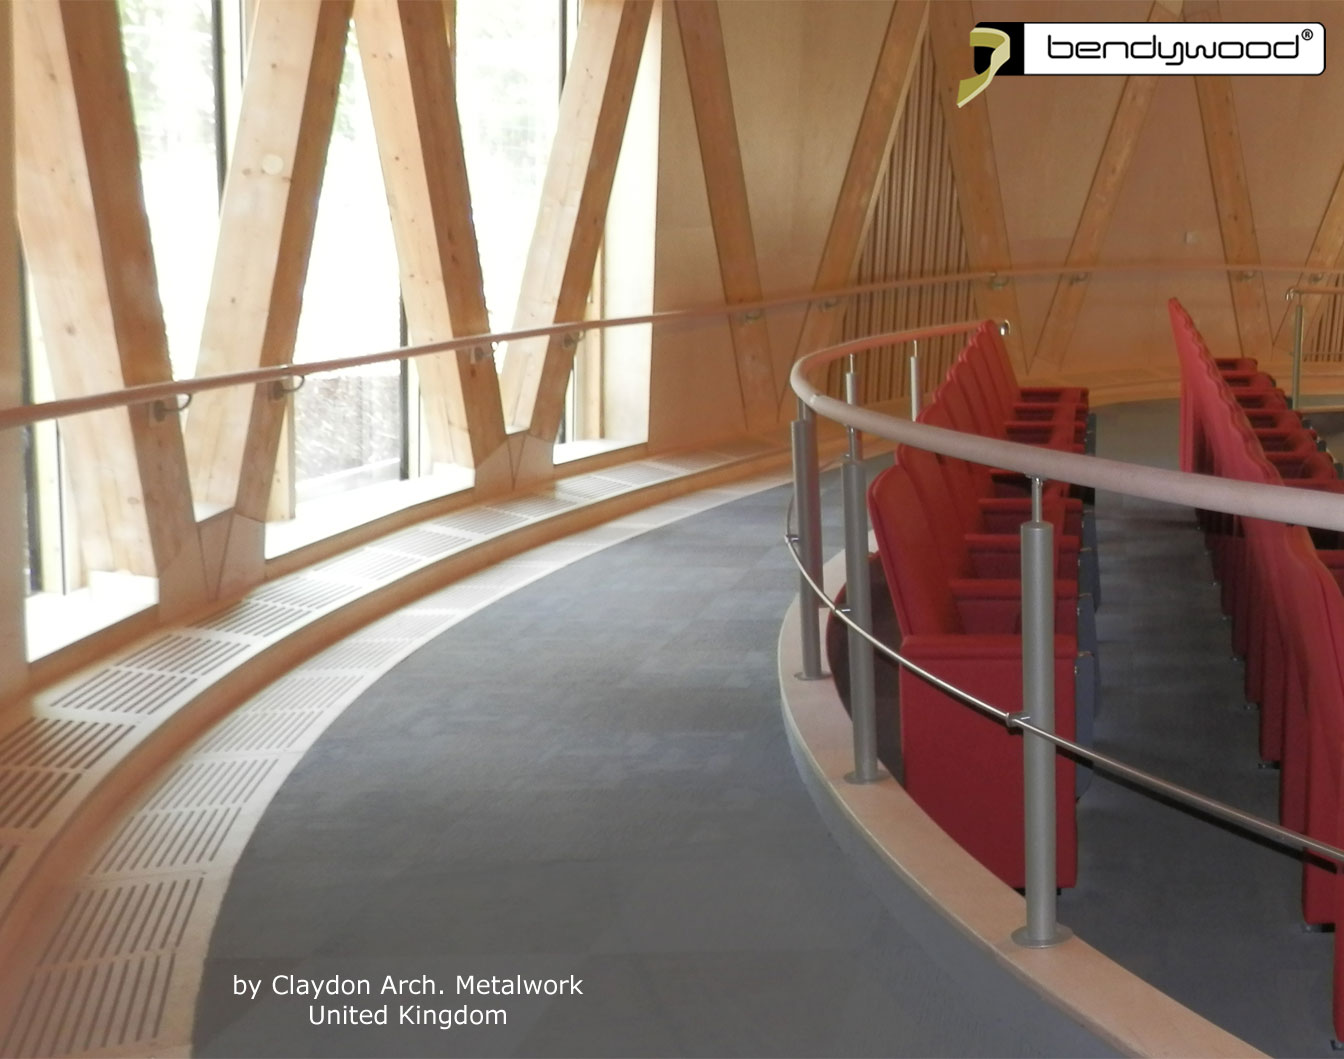 Bending wood Bendywood® - round bending handrails